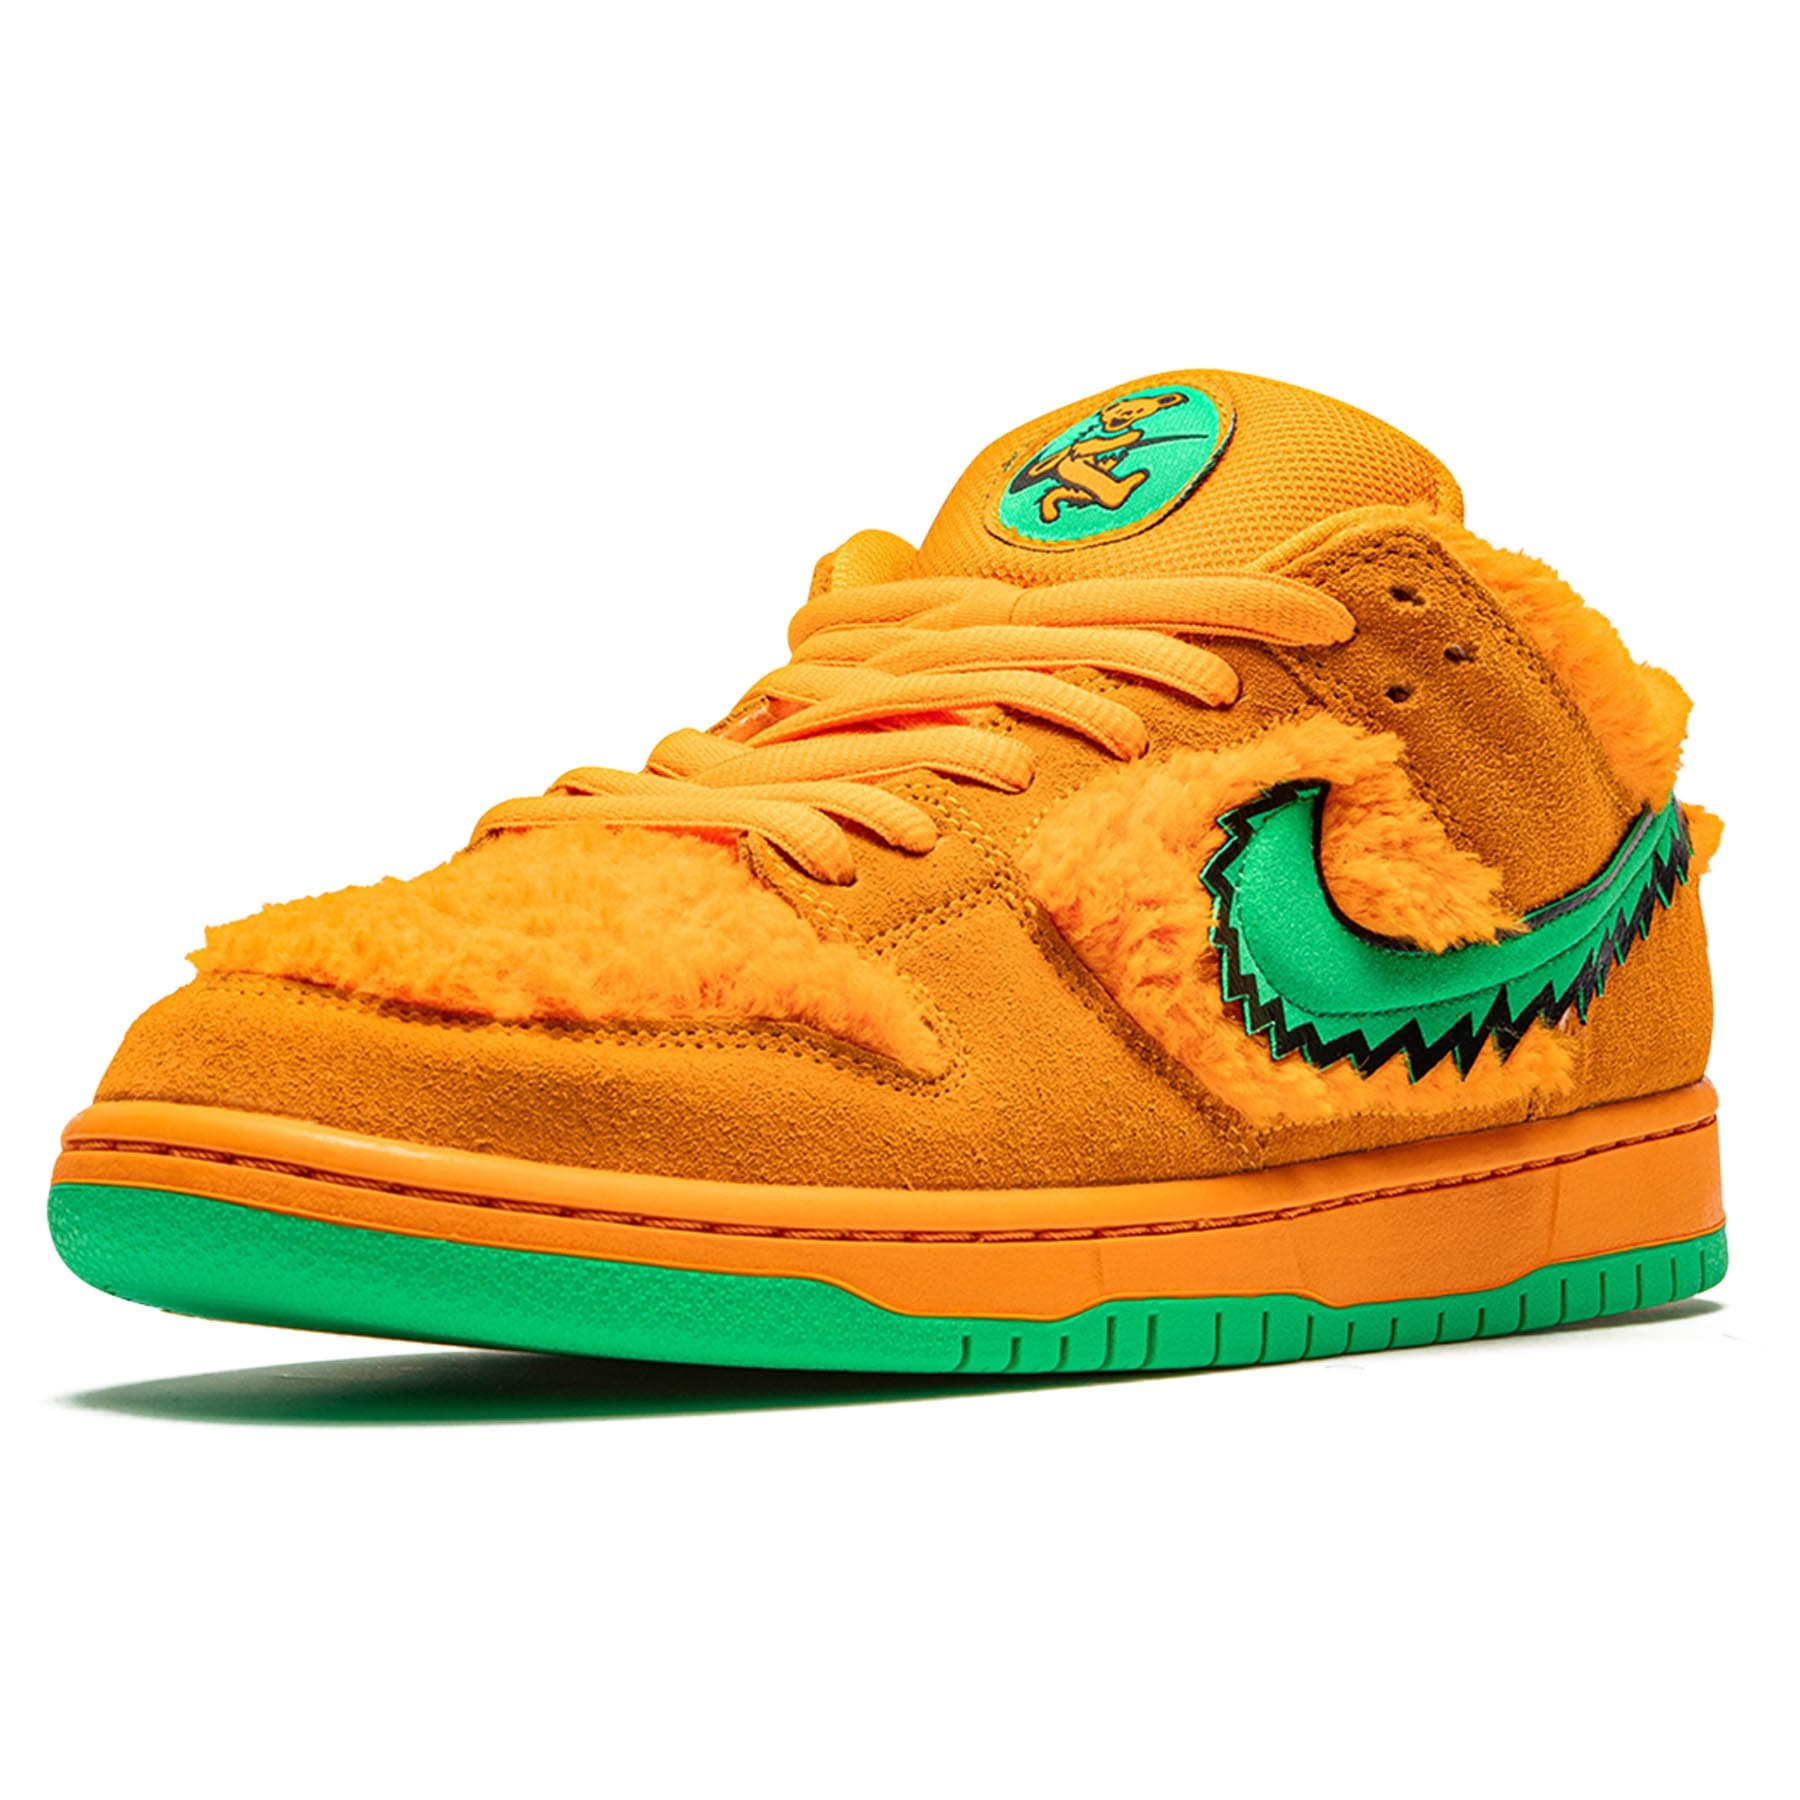 Grateful Dead x Nike Dunk Low SB 'Orange Bear' - Kick Game